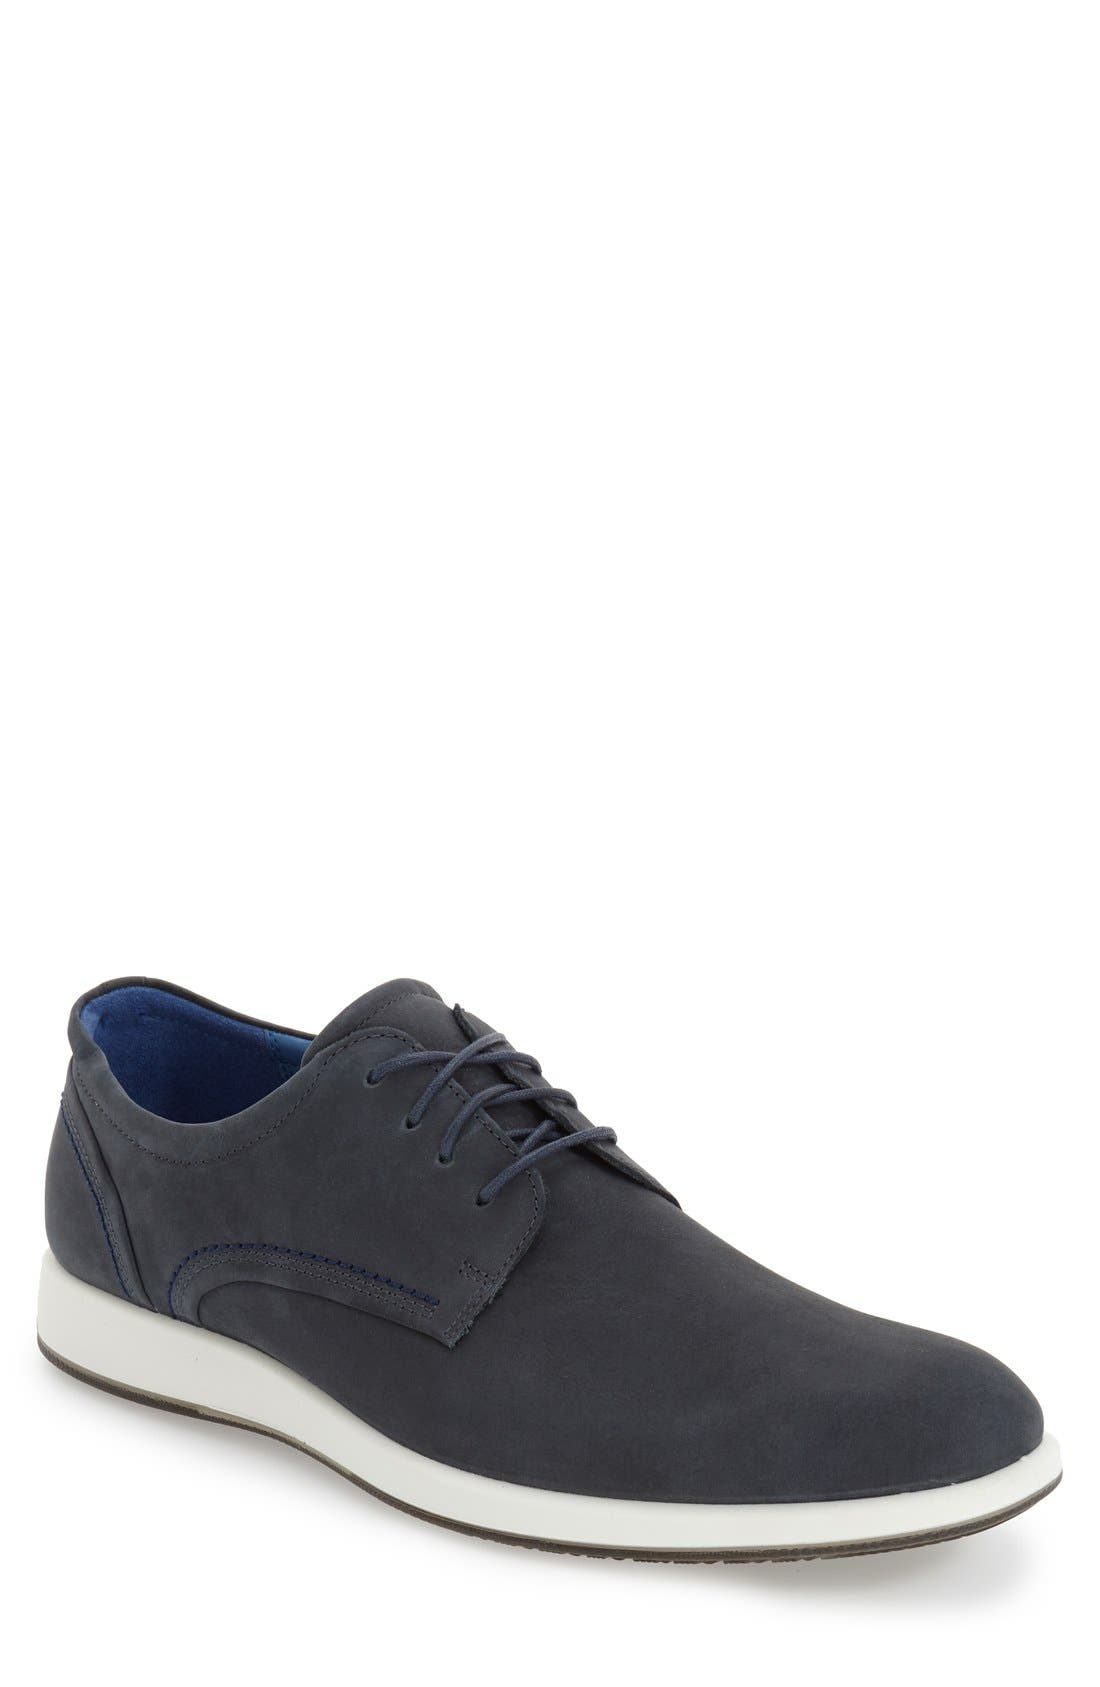 'Jared' Leather Oxford,                             Main thumbnail 1, color,                             Navy Leather